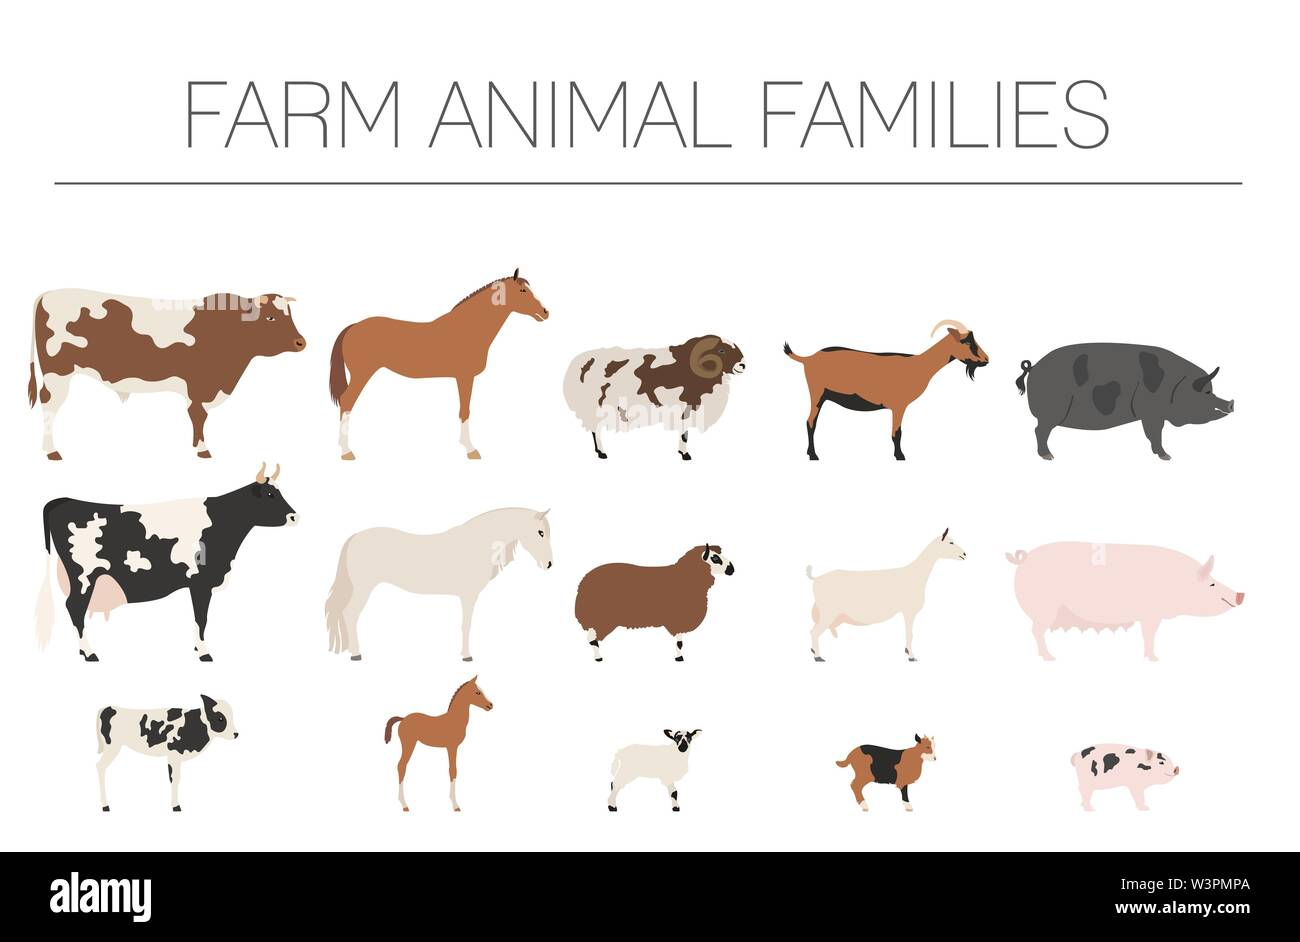 Farm animall family collection. Cattle, sheep, pig, horse, goat icon set. Flat design. Vector illustration - Stock Image